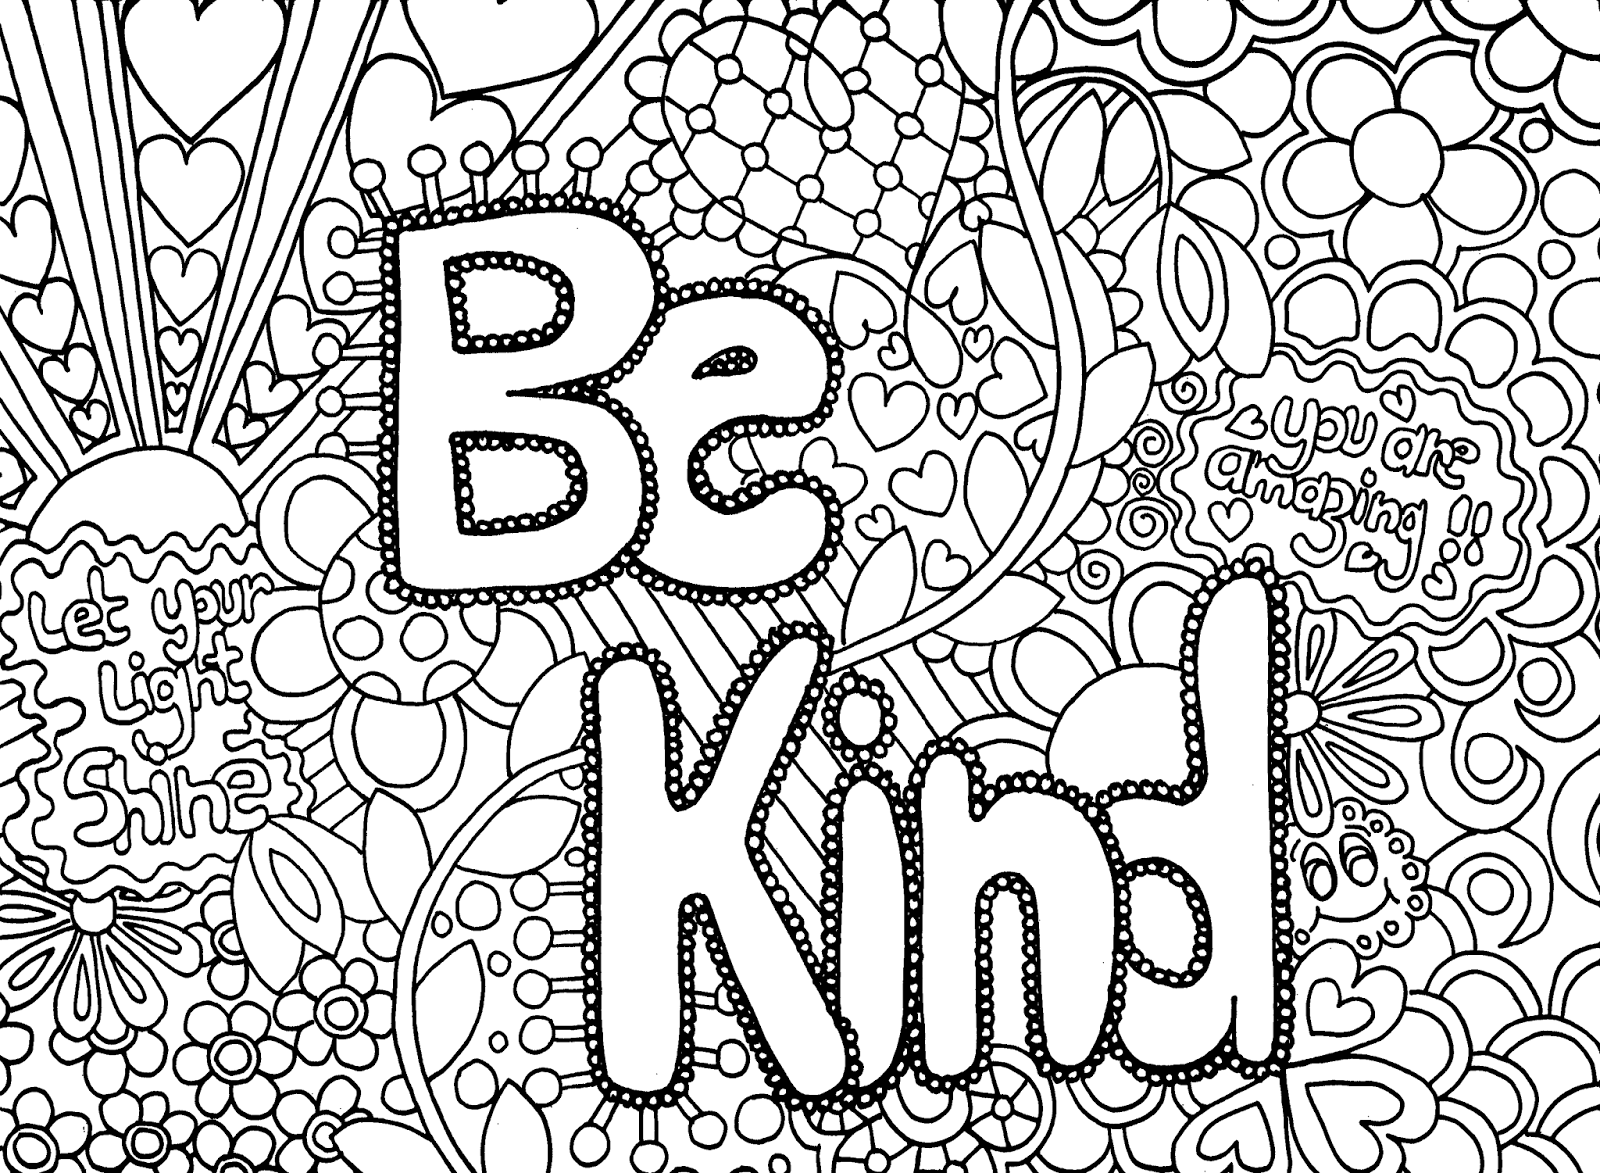 hard coloring pages for adults - Coliring Pages